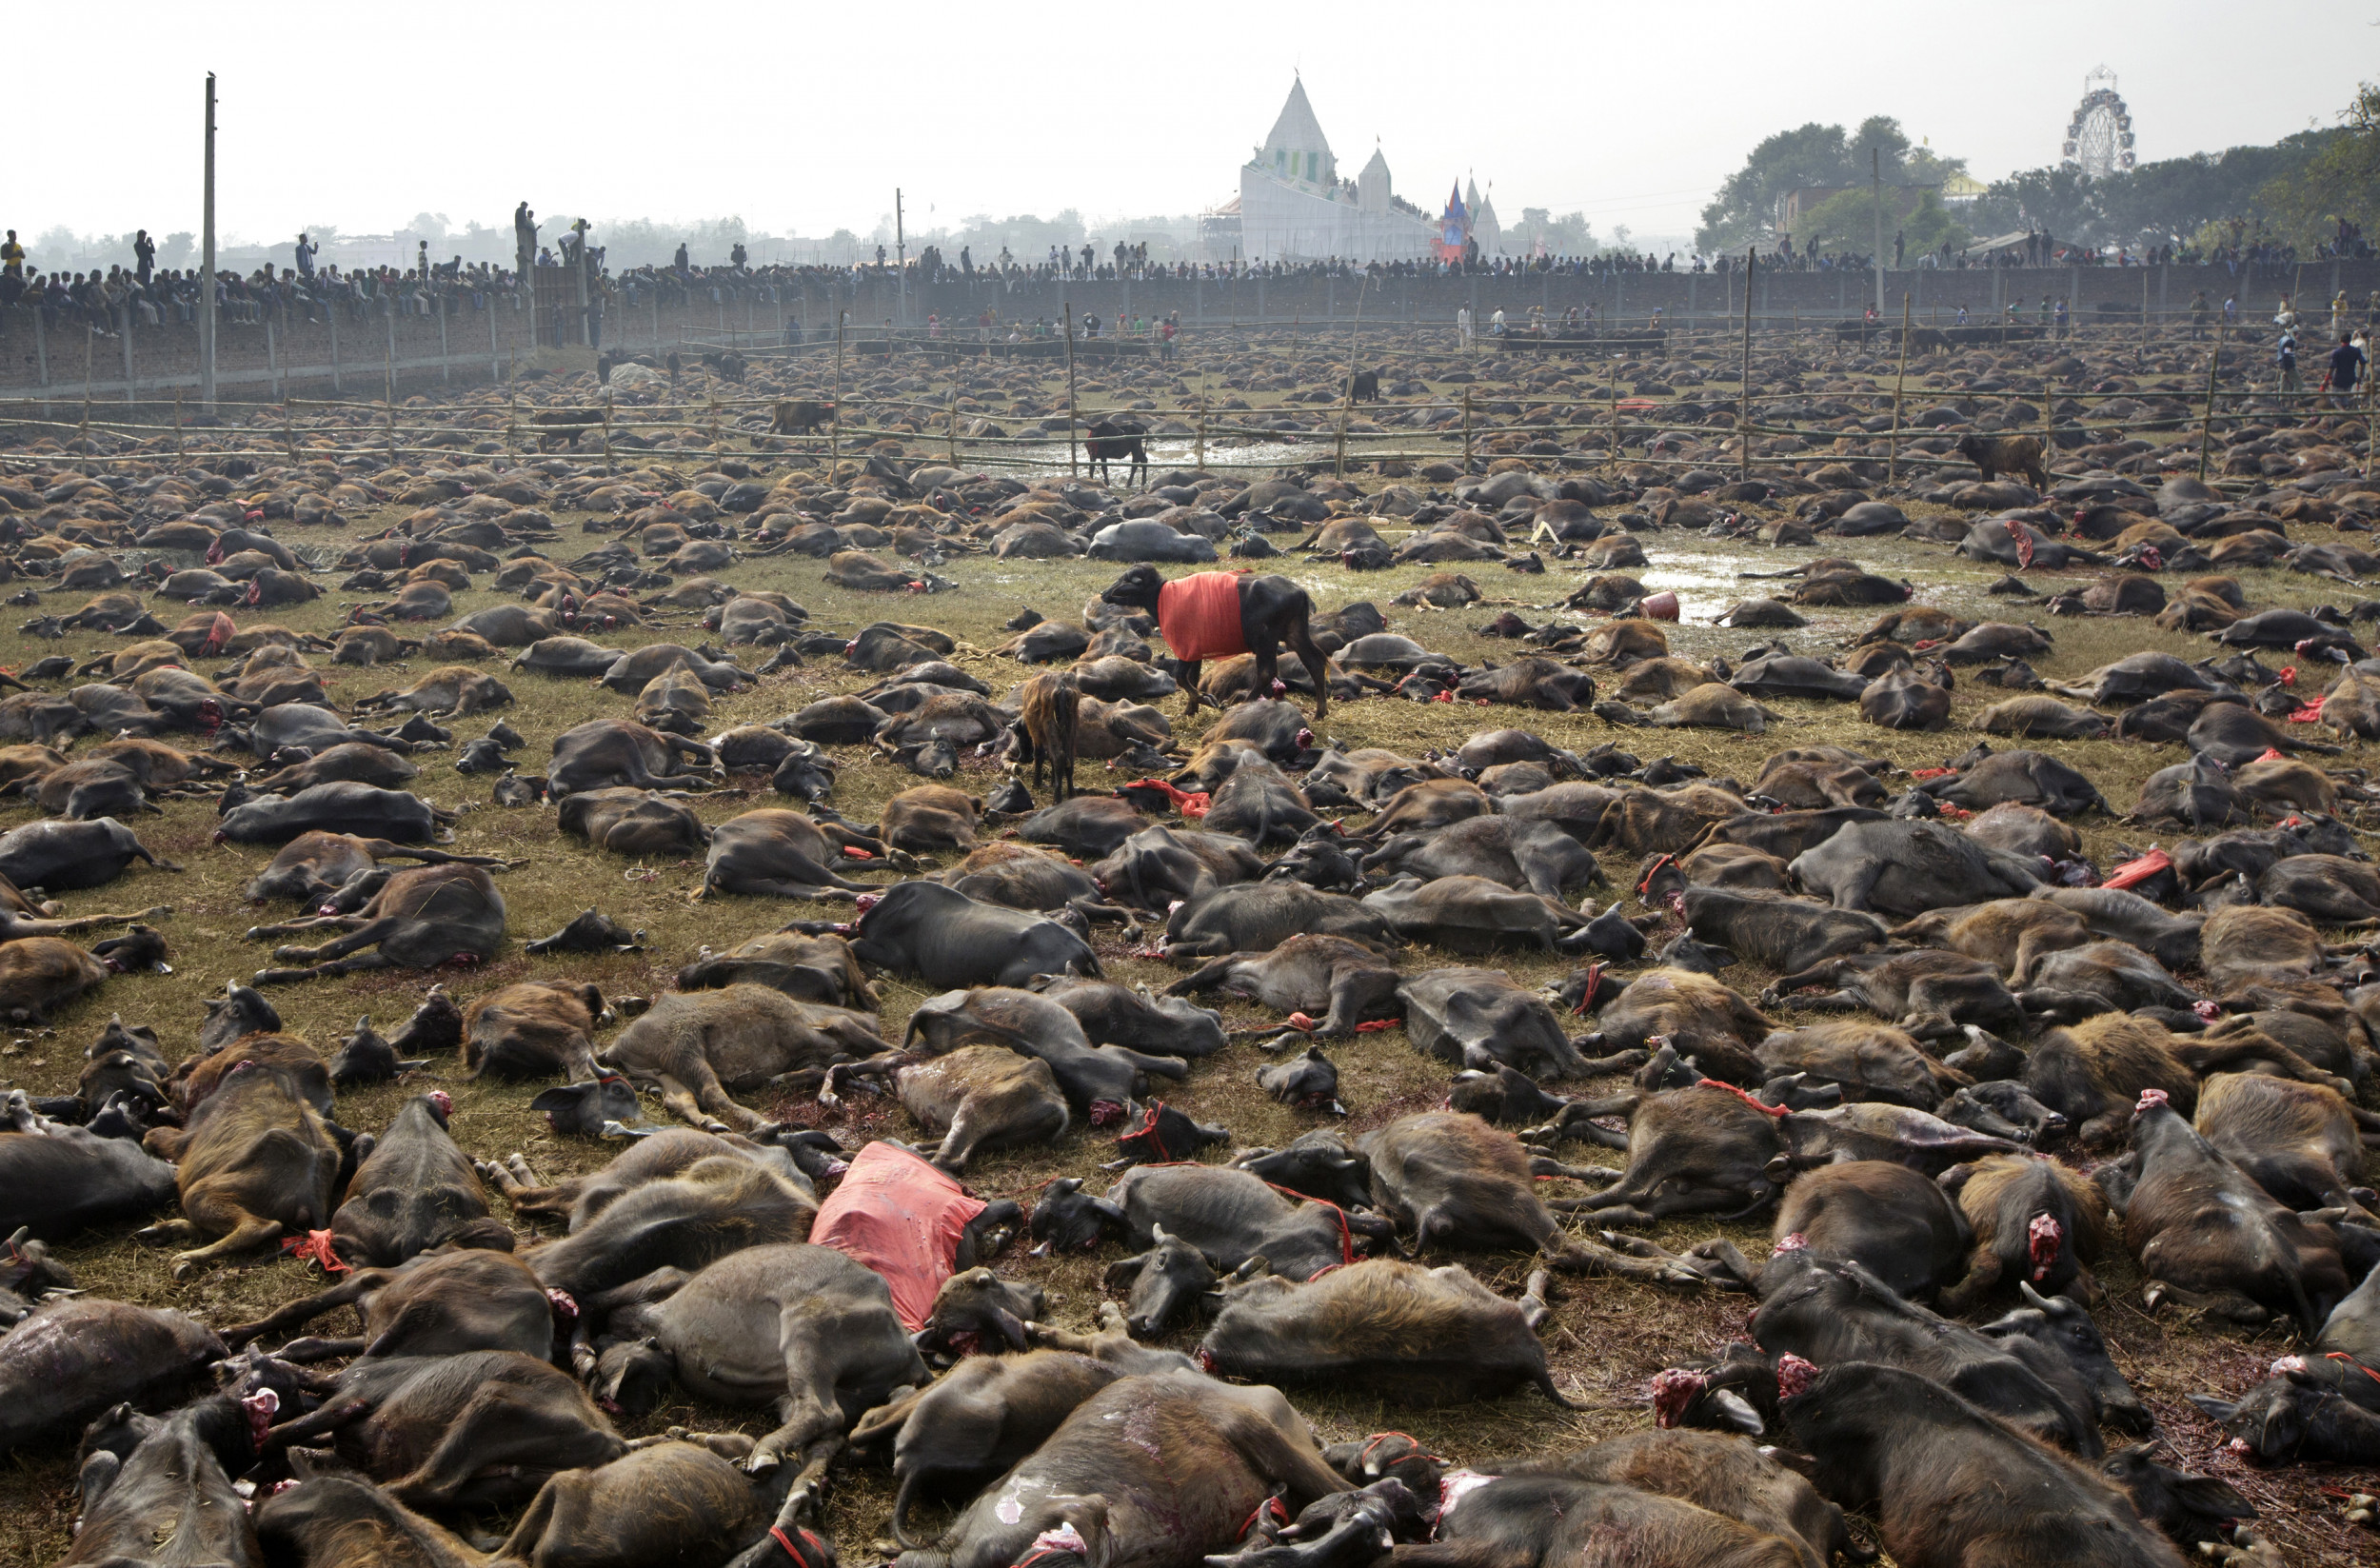 Картинки по запросу World's 'largest animal sacrifice' starts in Nepal